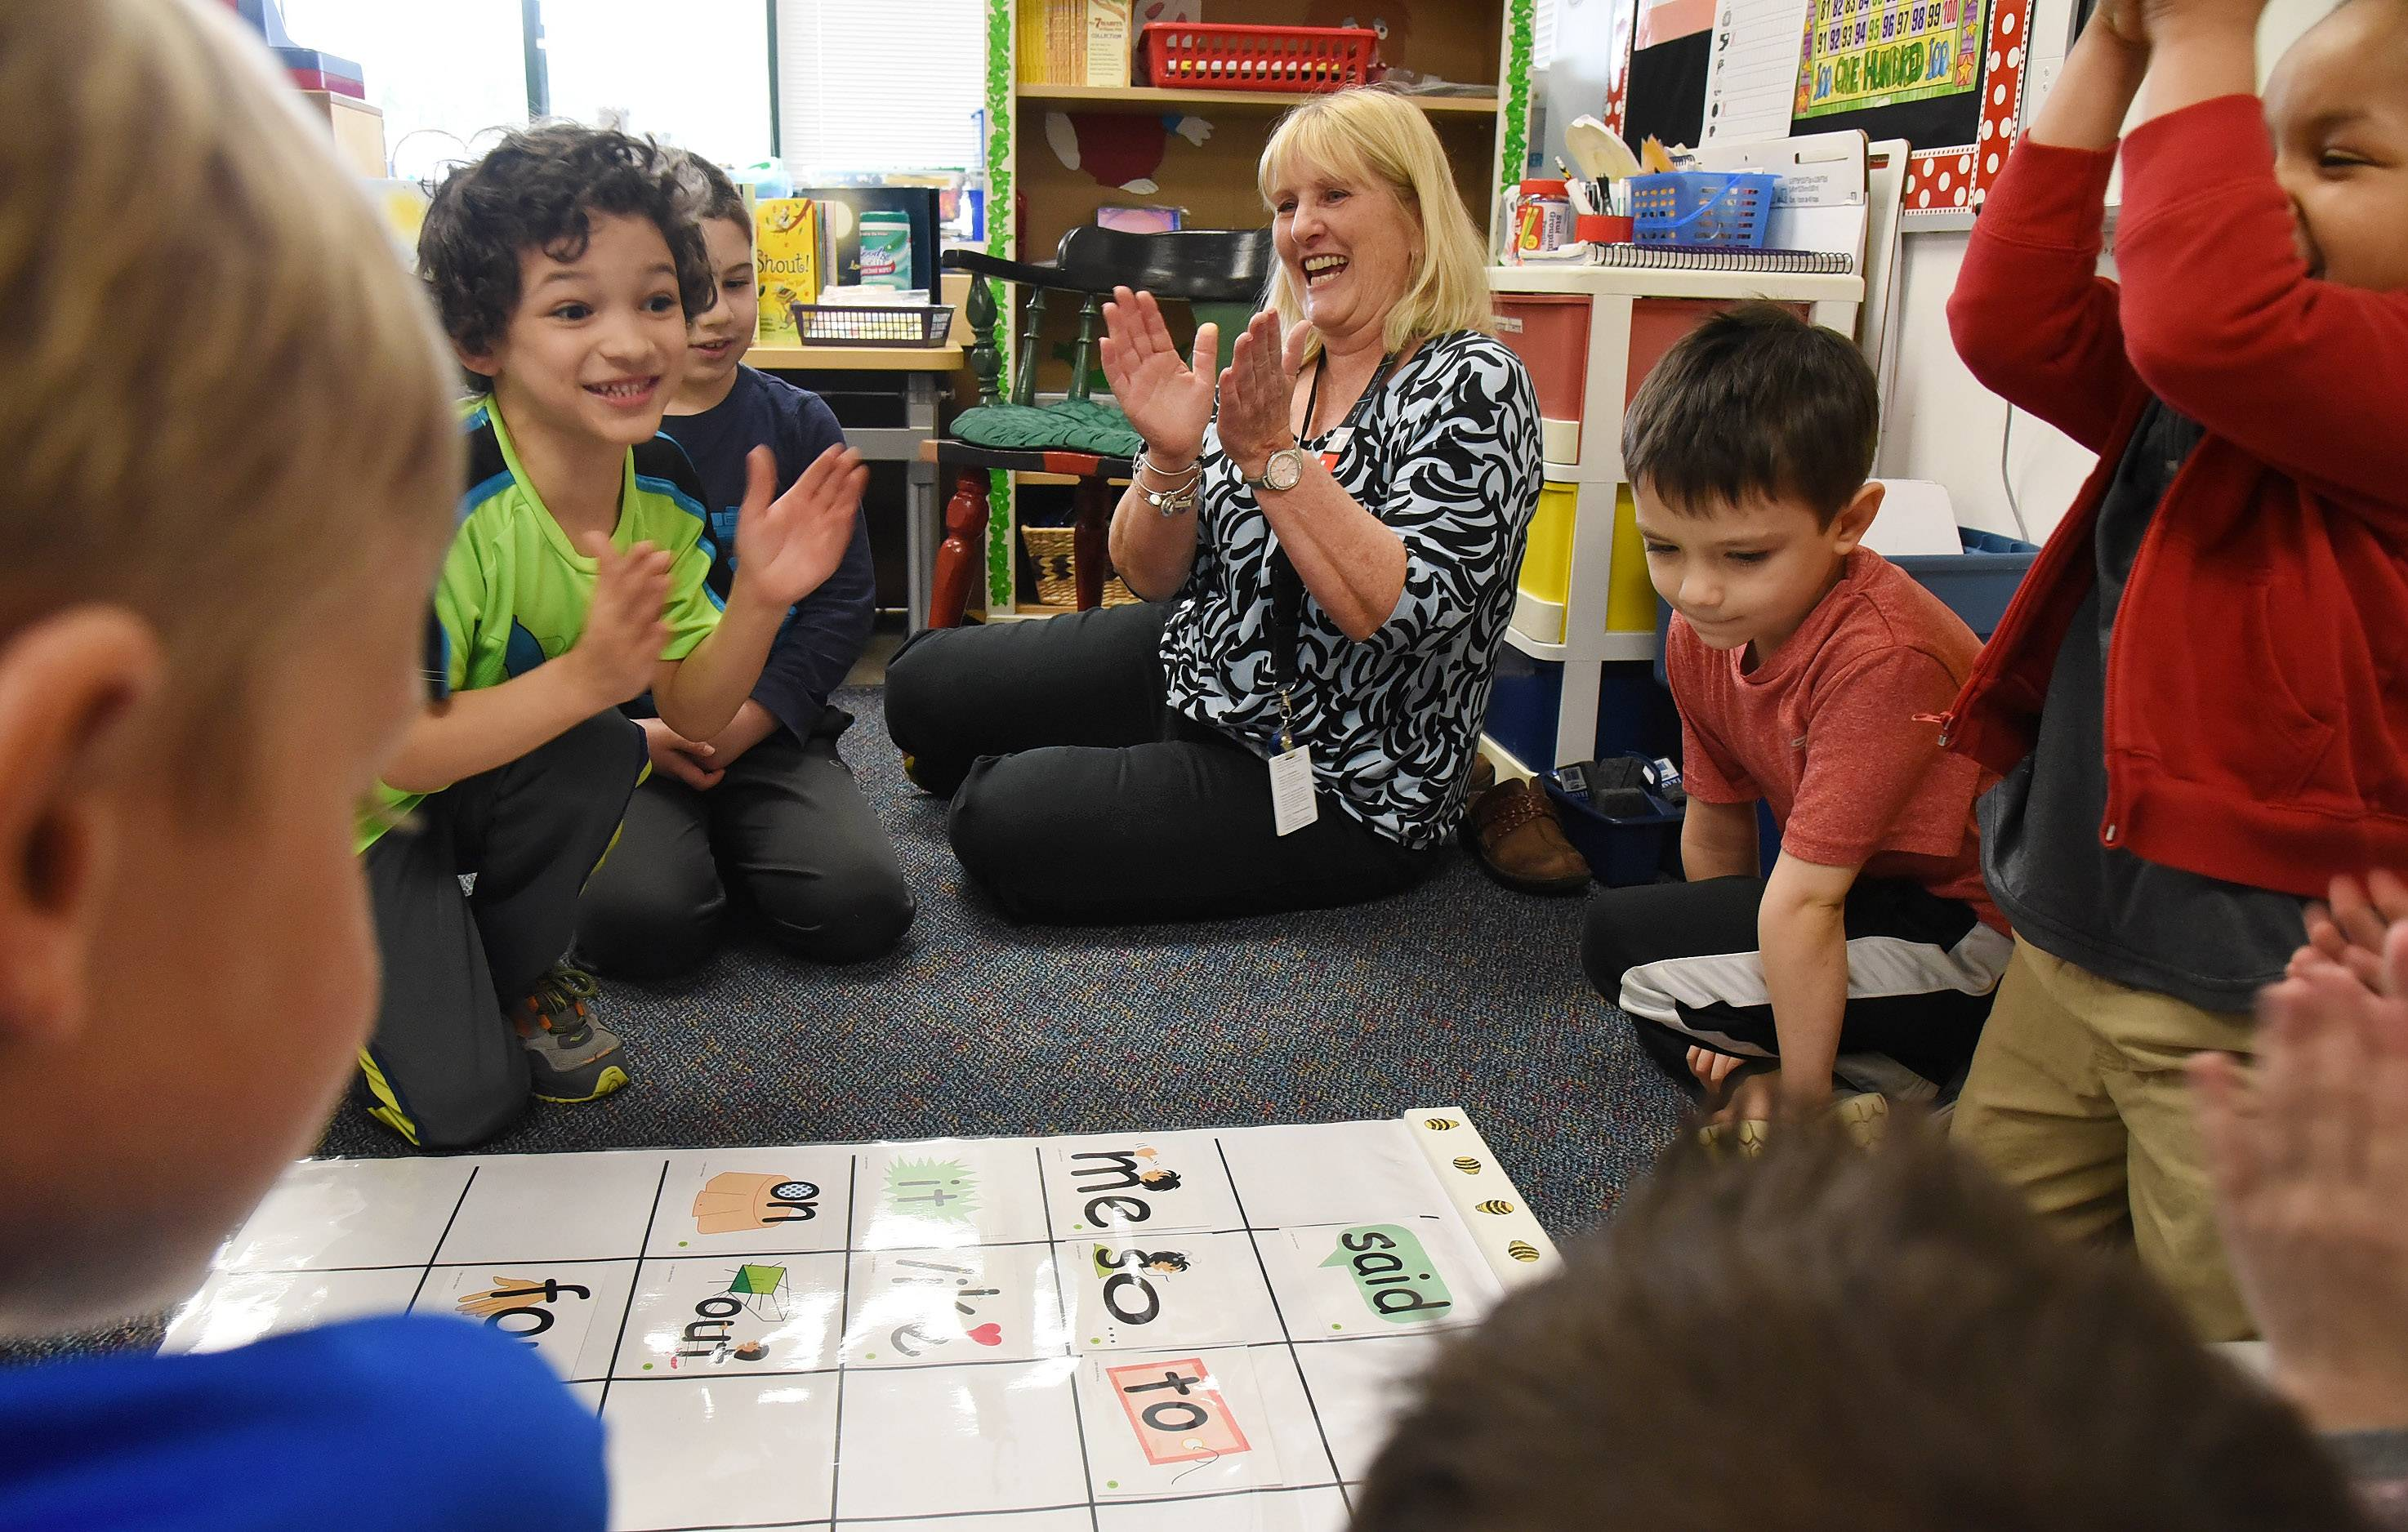 Nancy Abruscato, a kindergarten teacher at Westgate Elementary School in Arlington Heights, says it's important her students learn how to work together in the classroom.